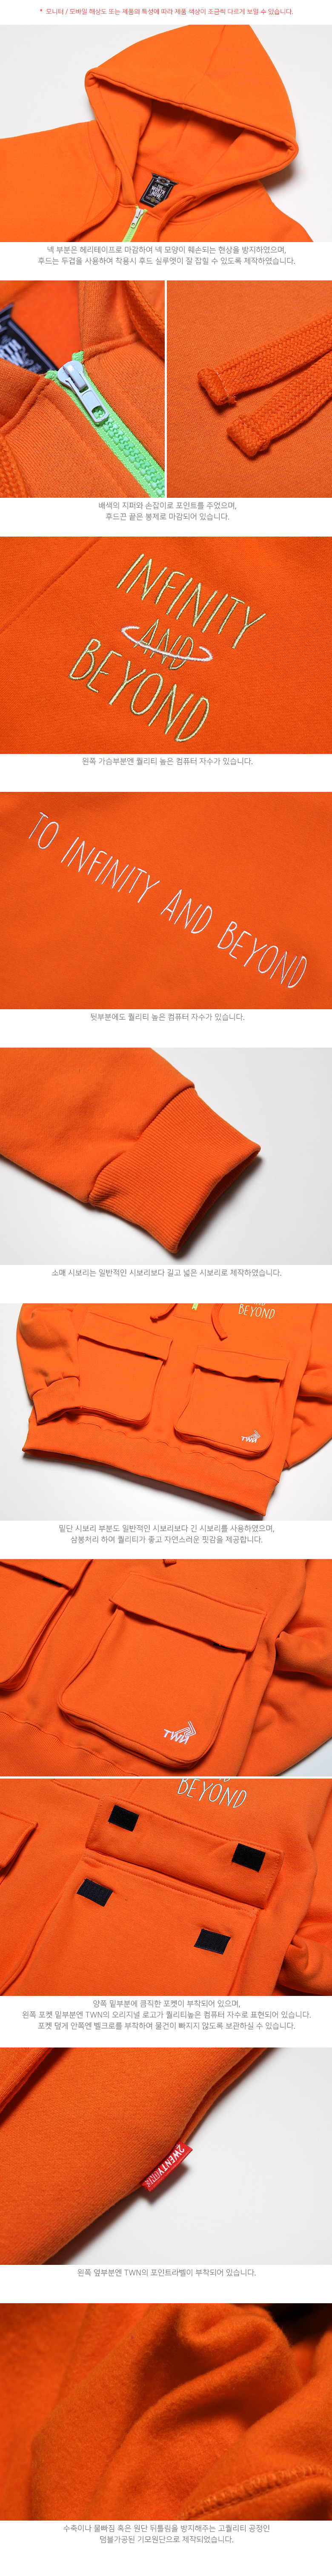 20190121_twn_beyondzipper_detail_orange_ym_02.jpg